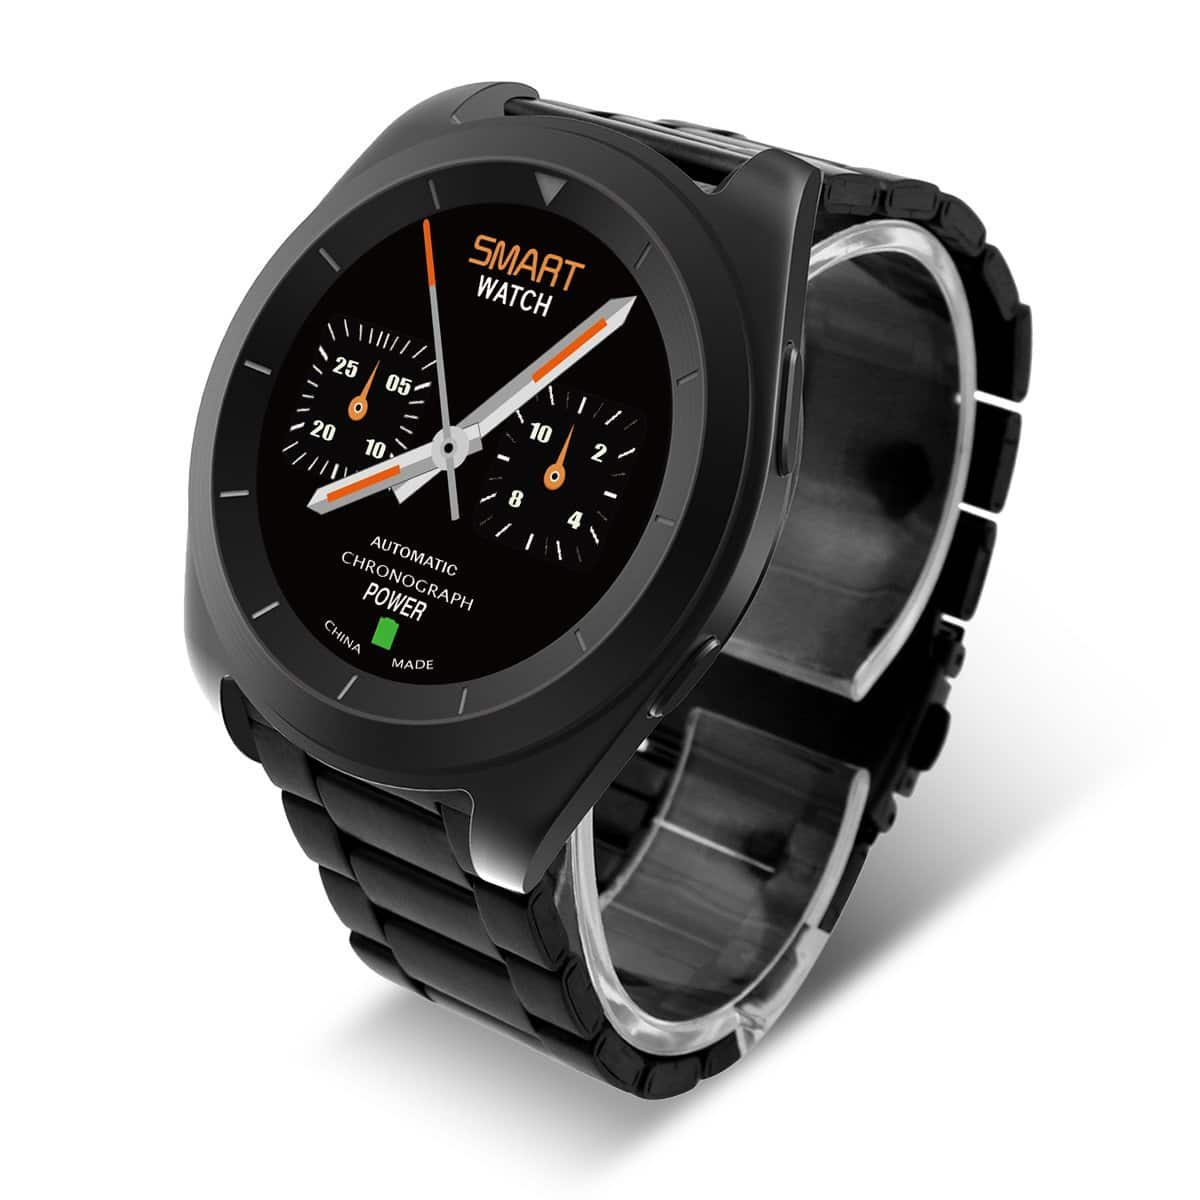 Bluetooth 4.0 PSG Heart Rate Monitor Sedentary Reminder Call/SMS Reminder Smart Watch From $26.39 @ Amazon $28.19